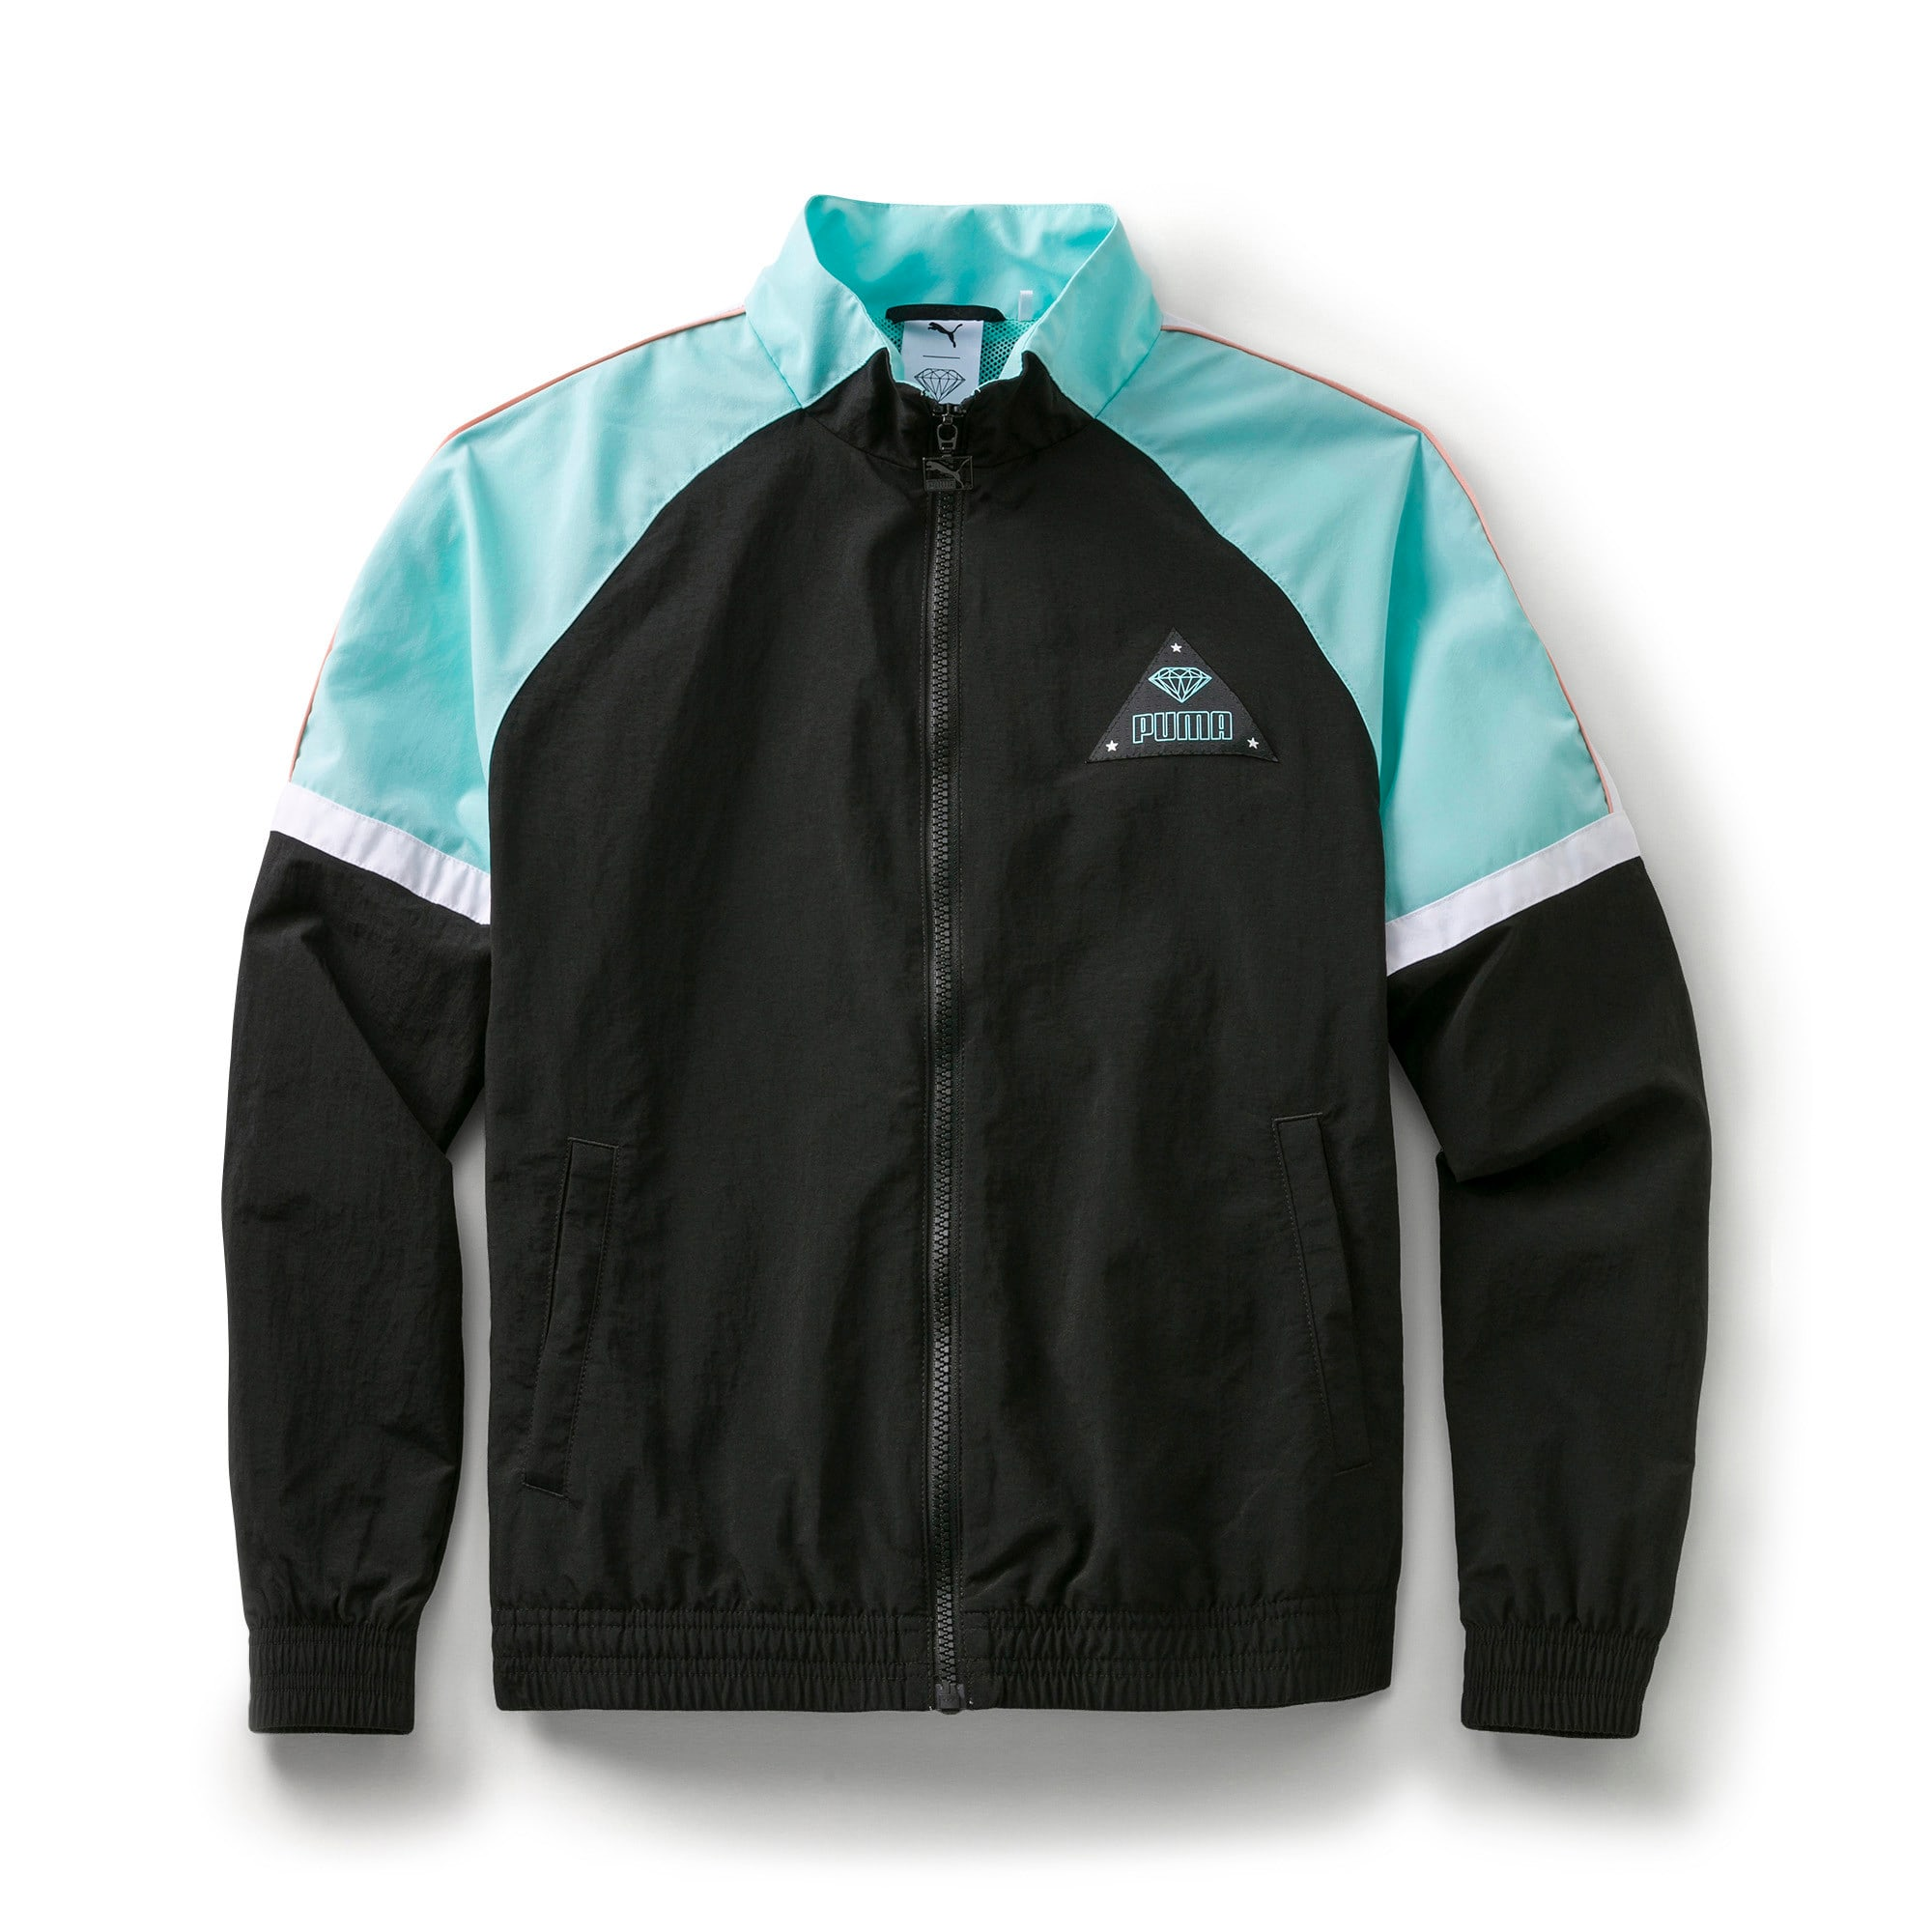 Thumbnail 1 of PUMA x DIAMOND SUPPLY CO. Boy's XTG Track Top, Puma Black, medium